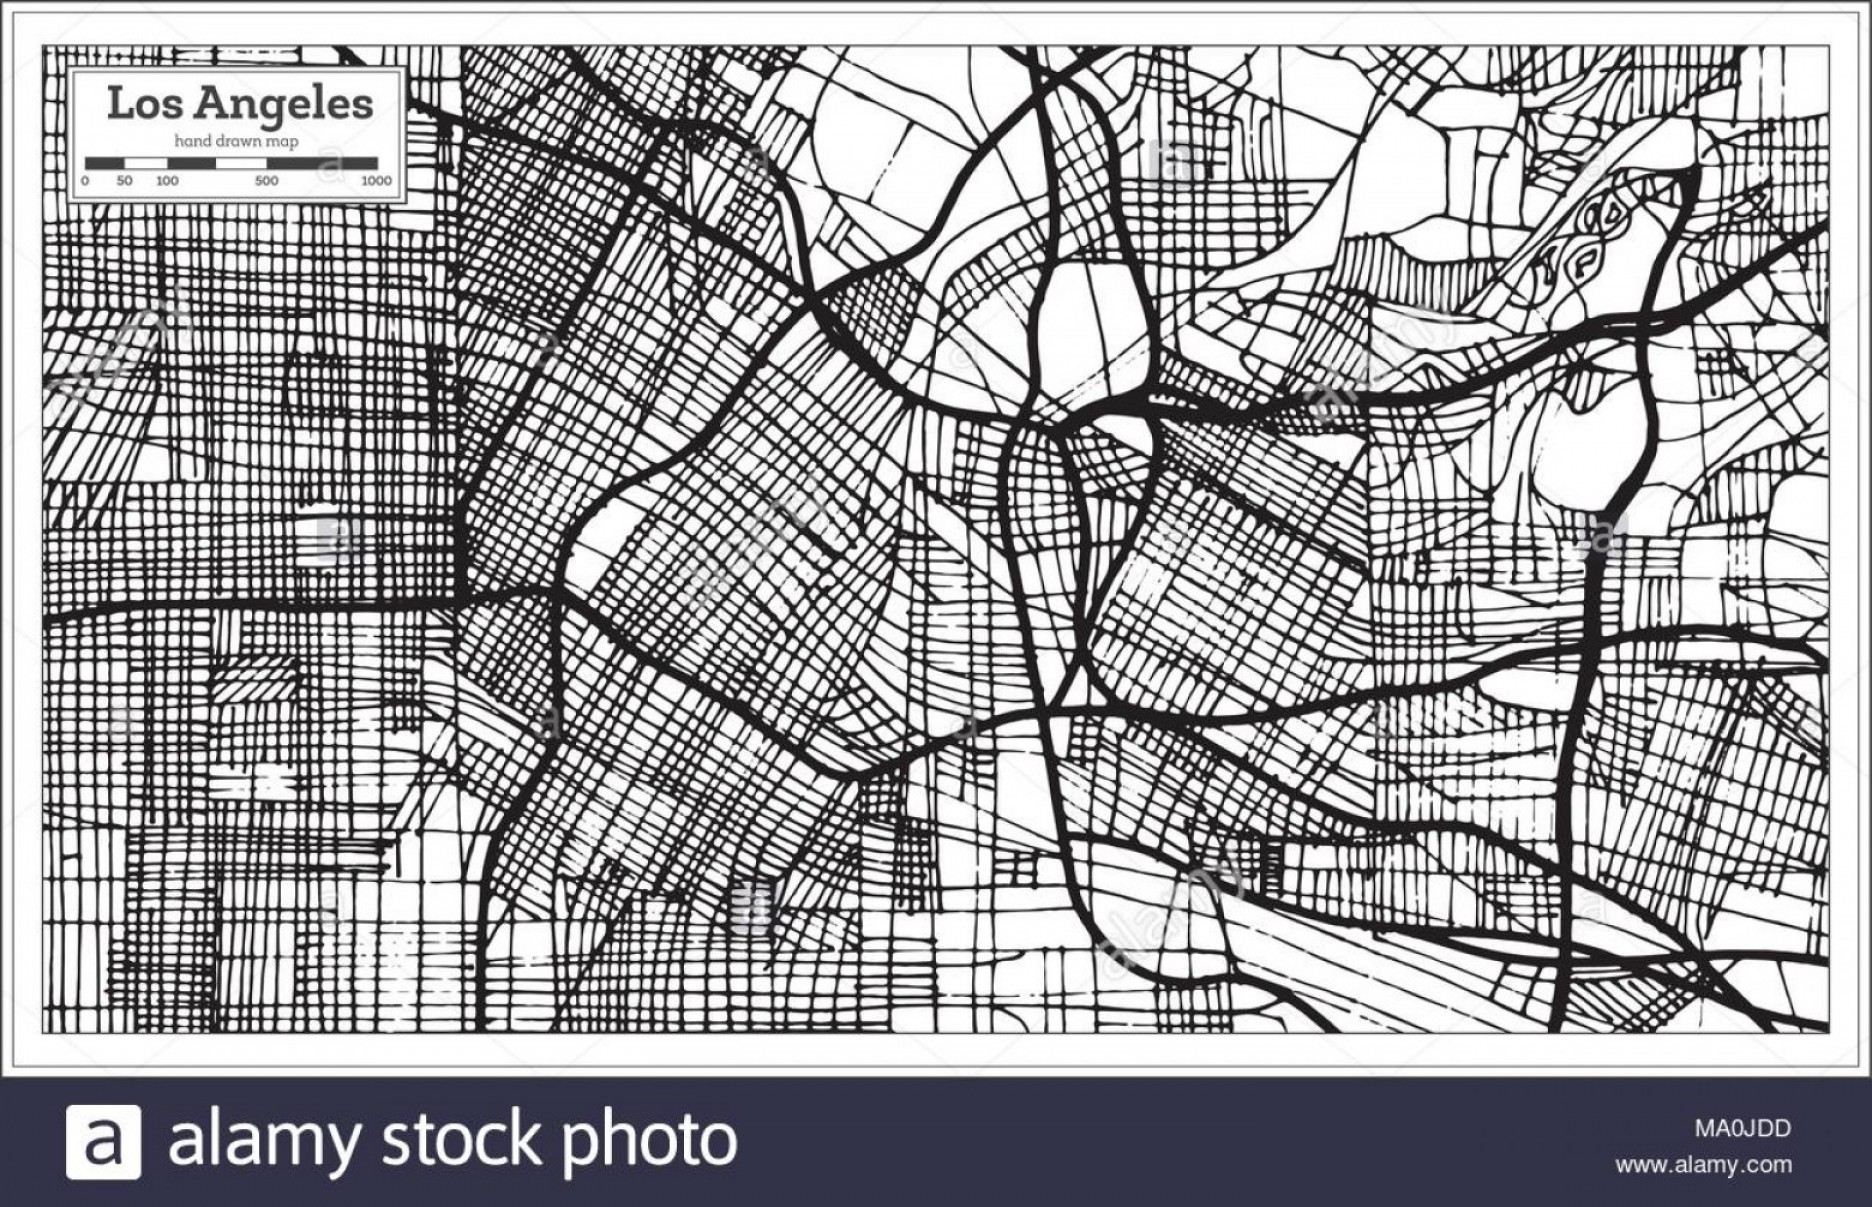 California Black And White Vector: Los Angeles California Usa City Map In Retro Style Black And White Color Outline Map Vector Illustration Image